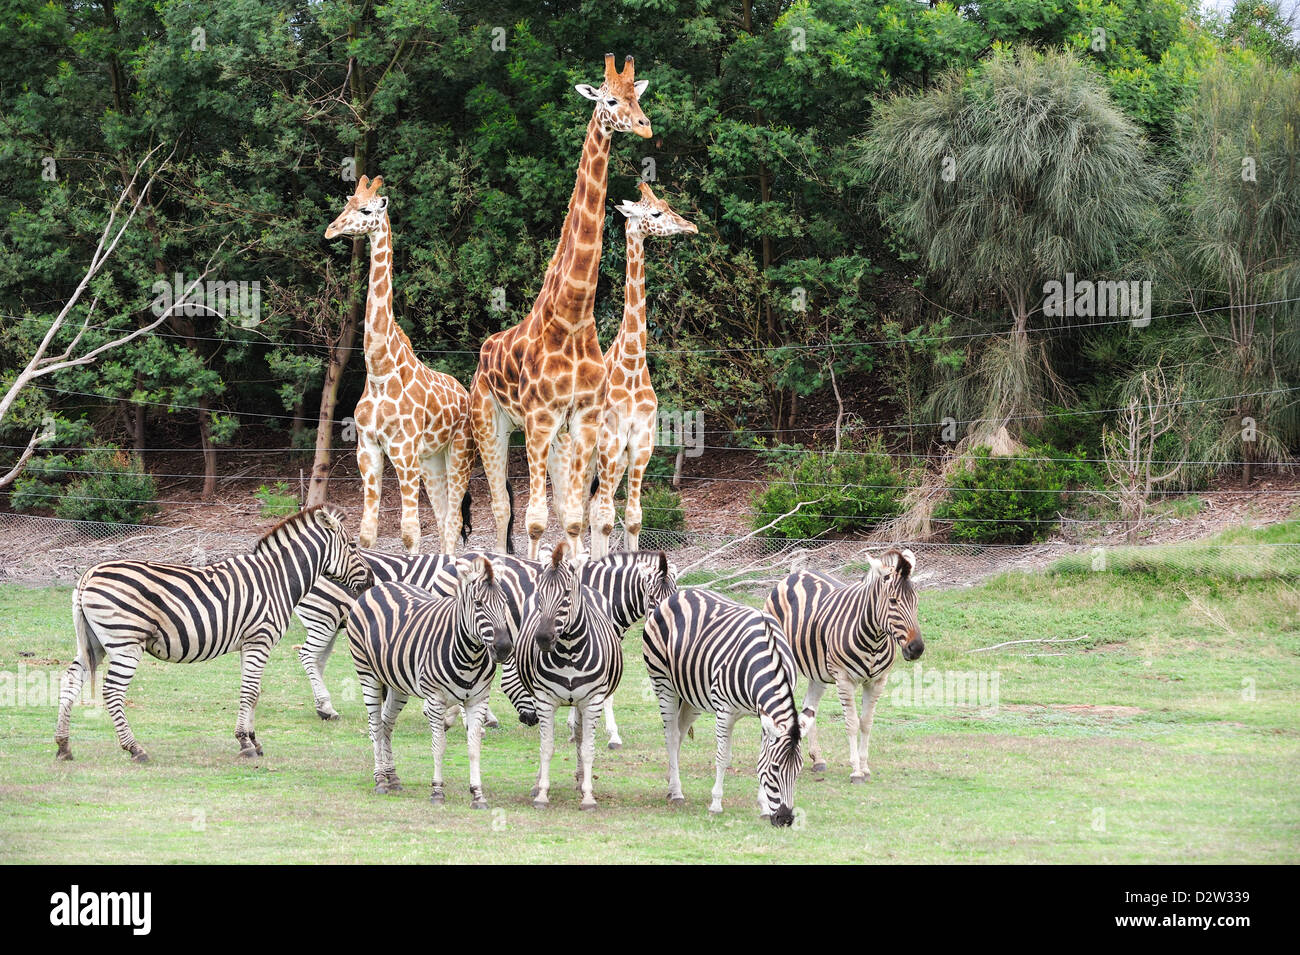 Three Giraffes On Lookout Duty In The Background As A Herd